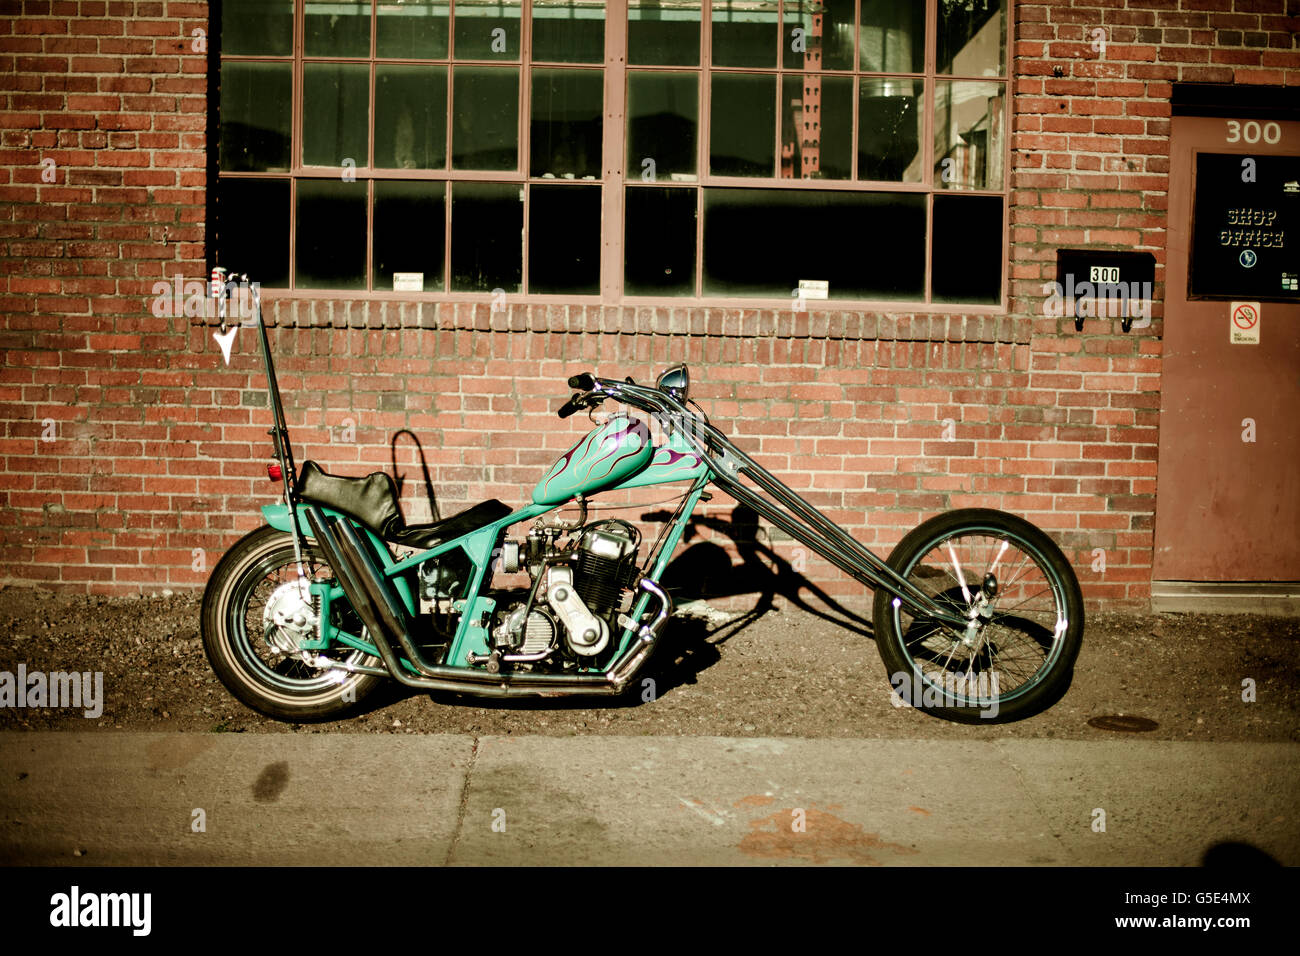 Period correct chopper motorcycle - Stock Image